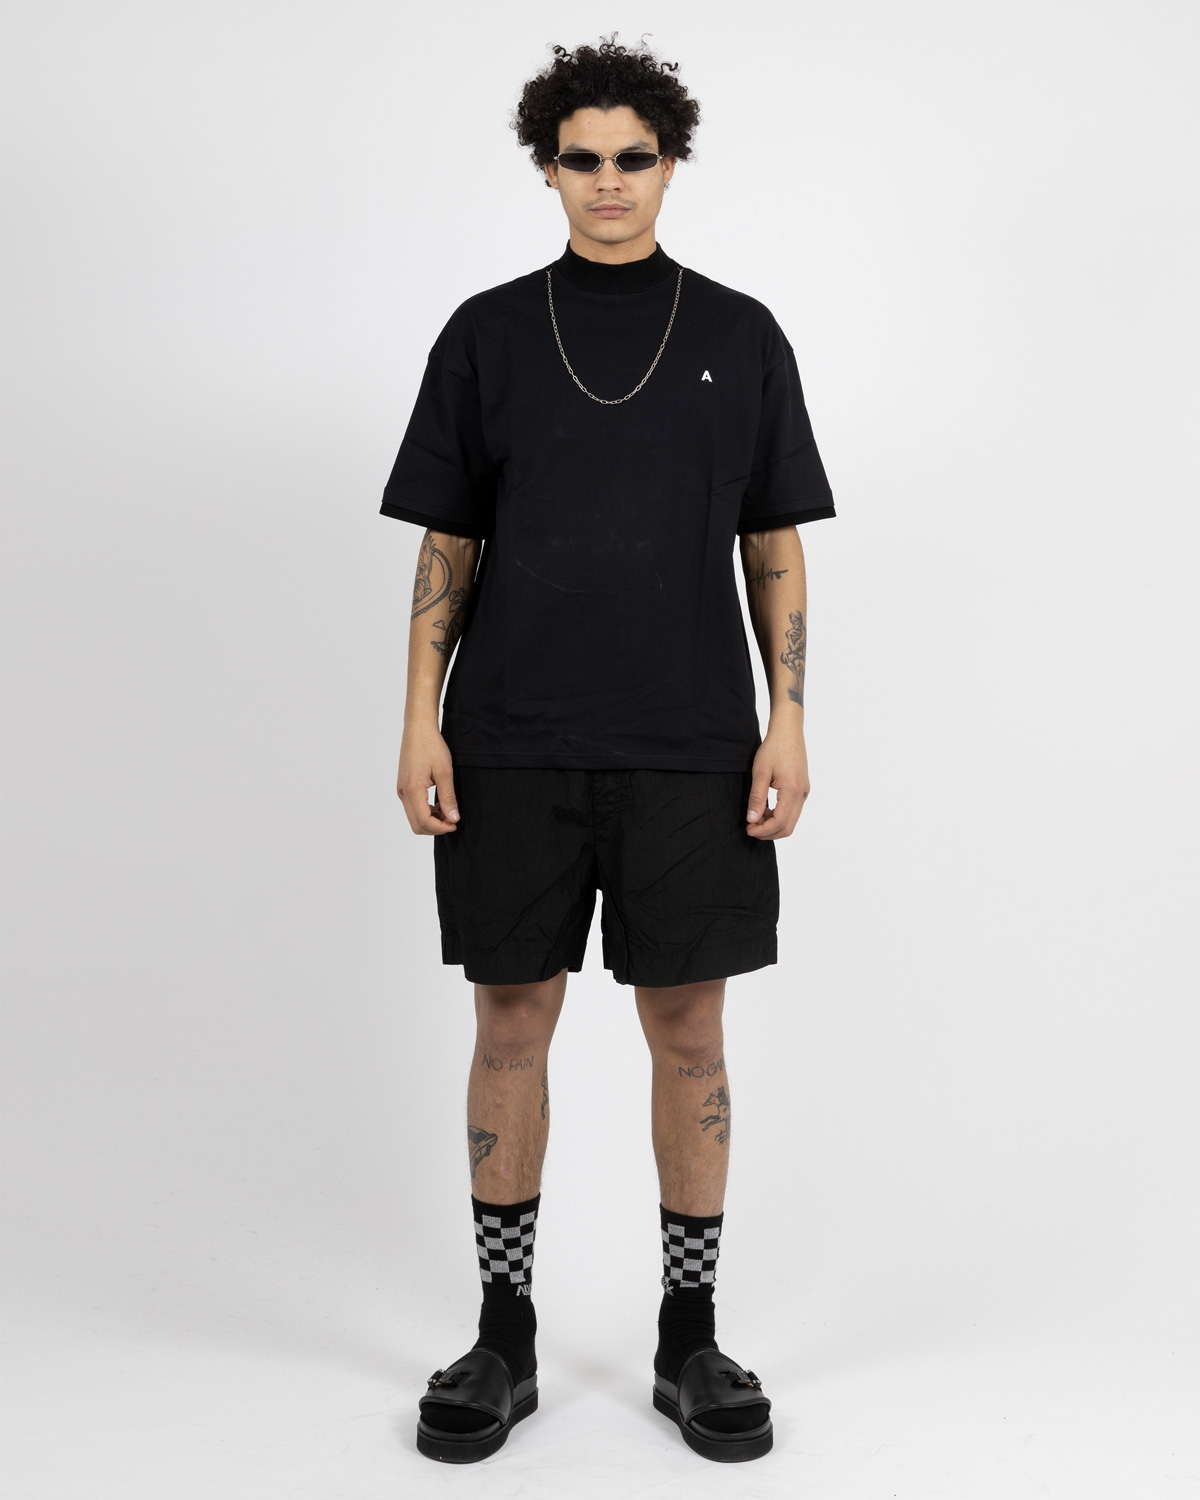 AMBUSH BLACK CHAIN T-SHIRT